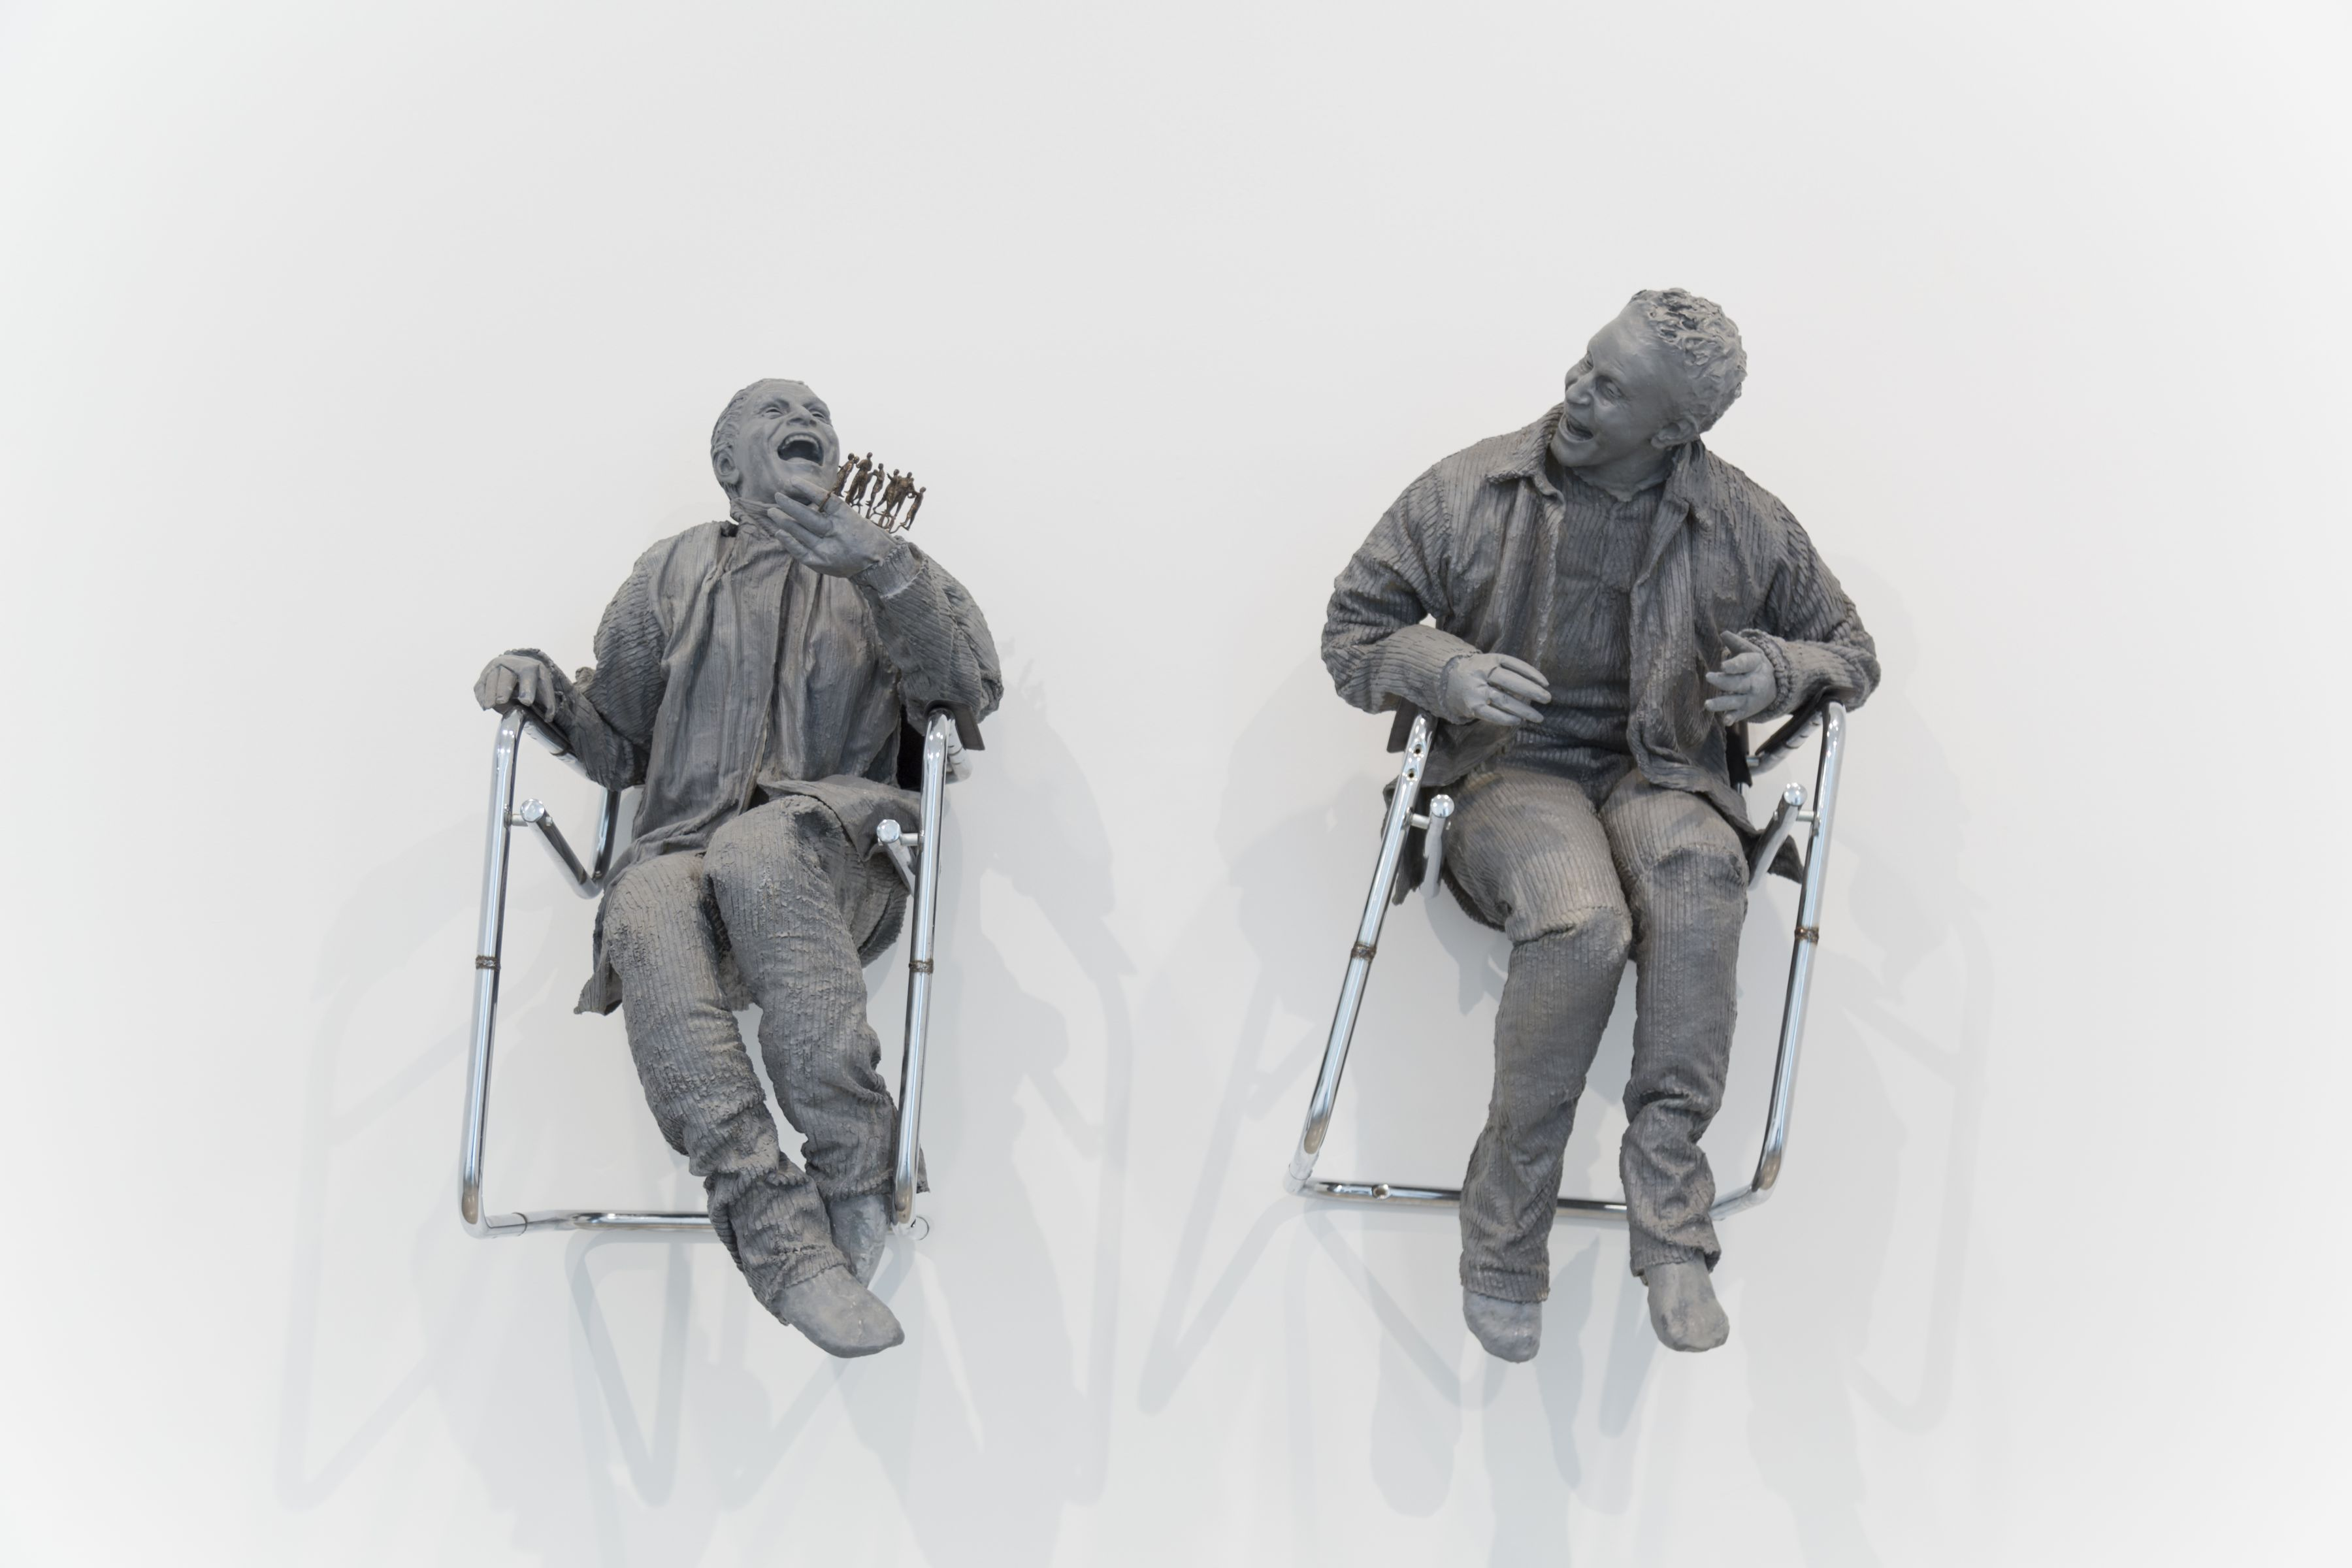 Juan Muñoz One Laughing at the Other, 2000